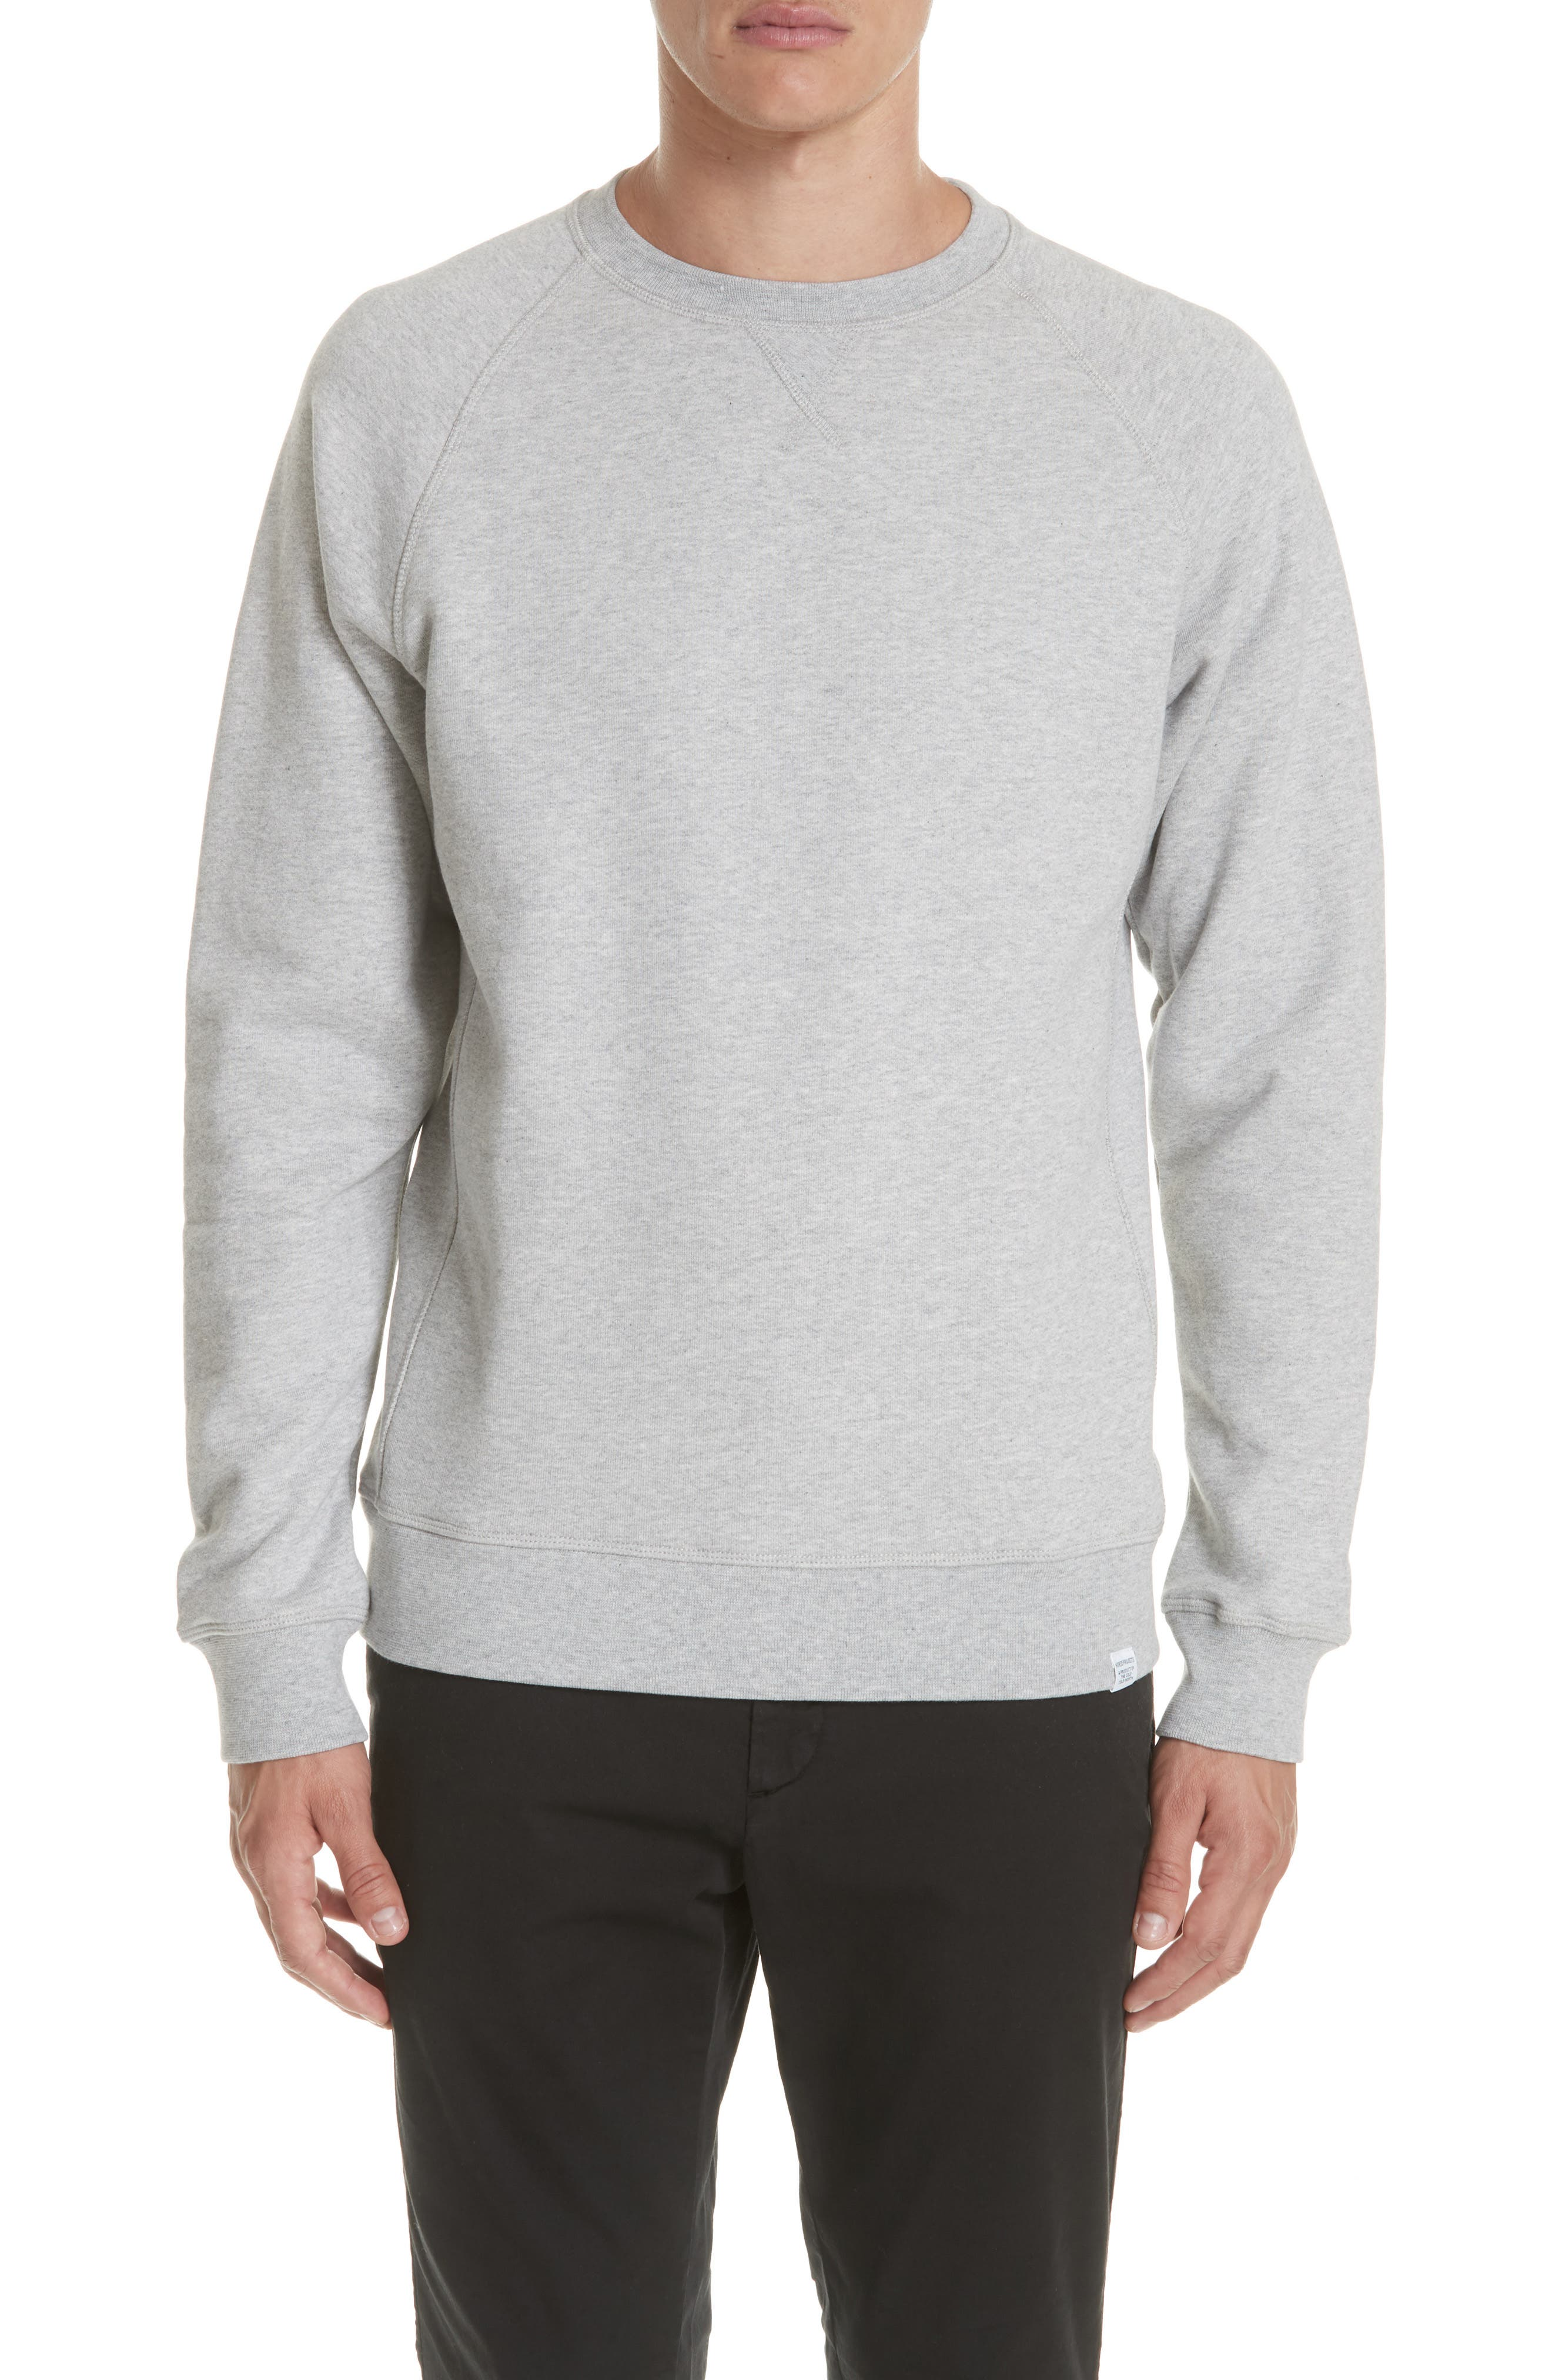 Ketel Crewneck Sweatshirt,                             Main thumbnail 1, color,                             050